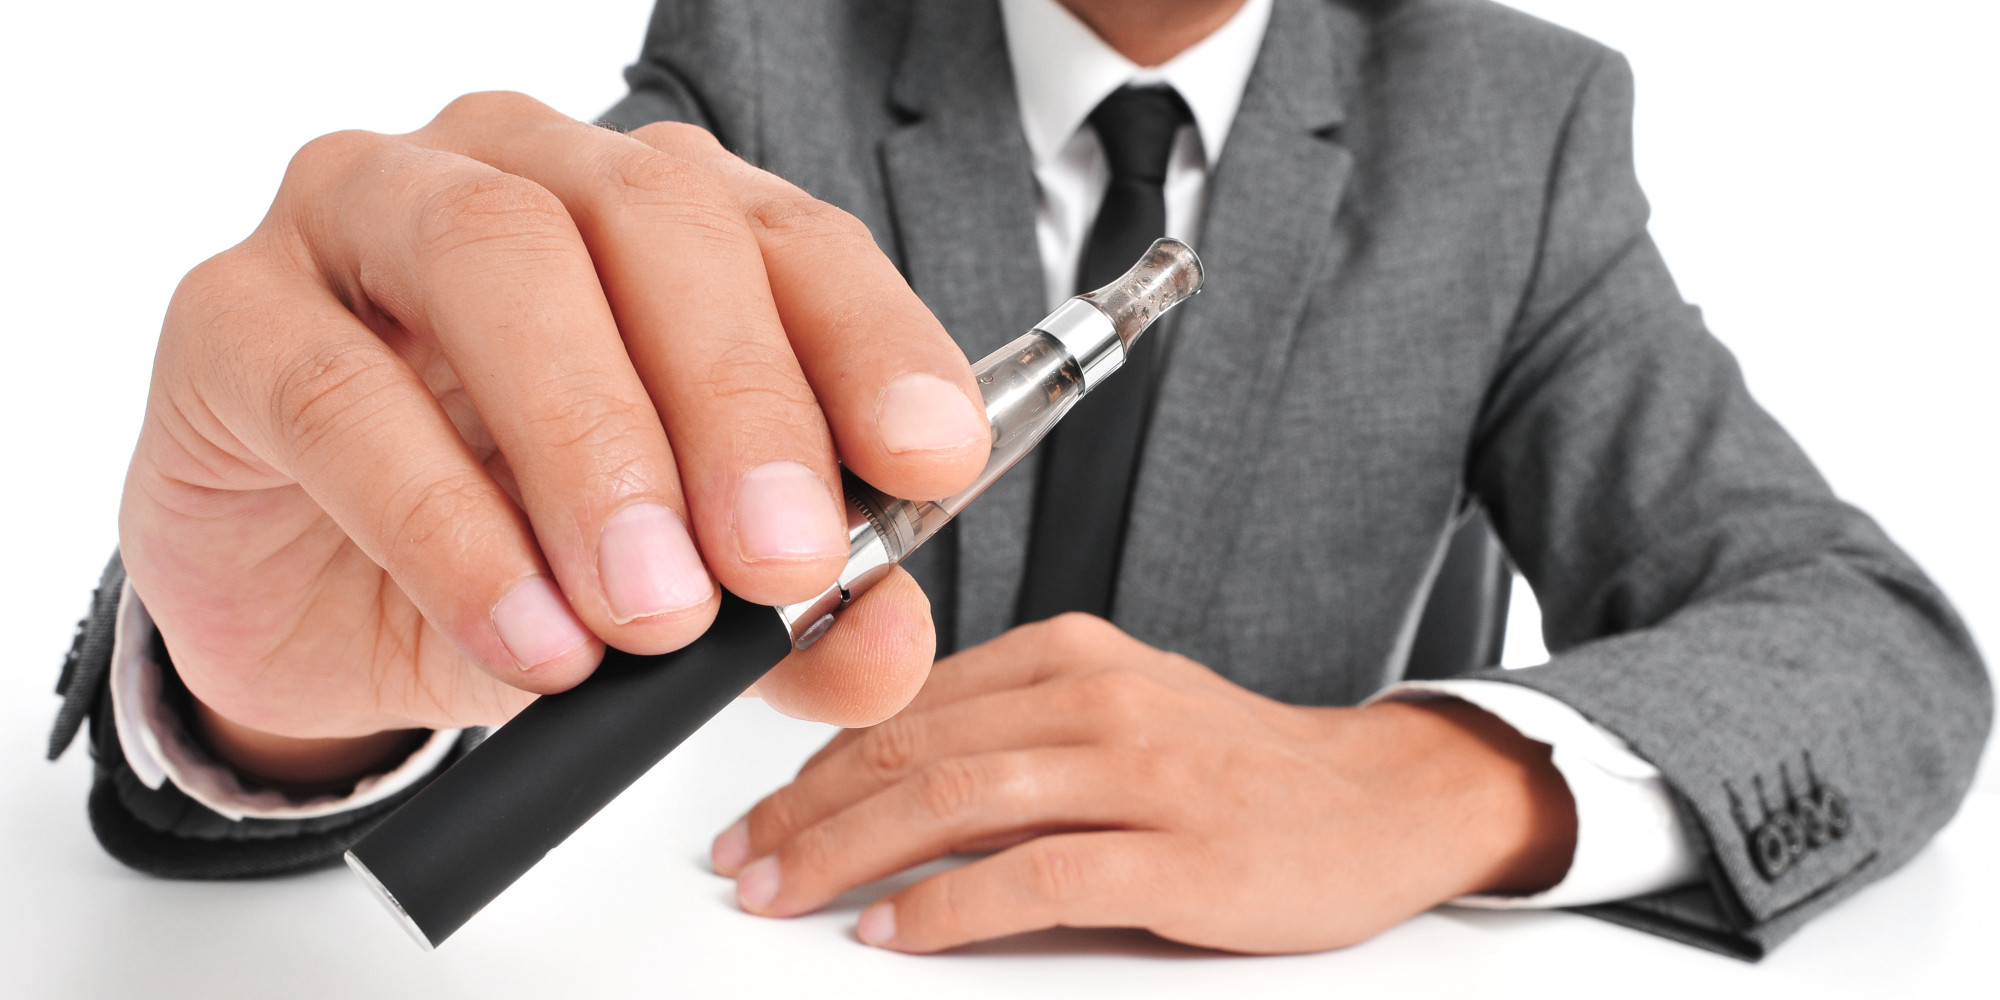 The Benefits Of Digital Cigarettes